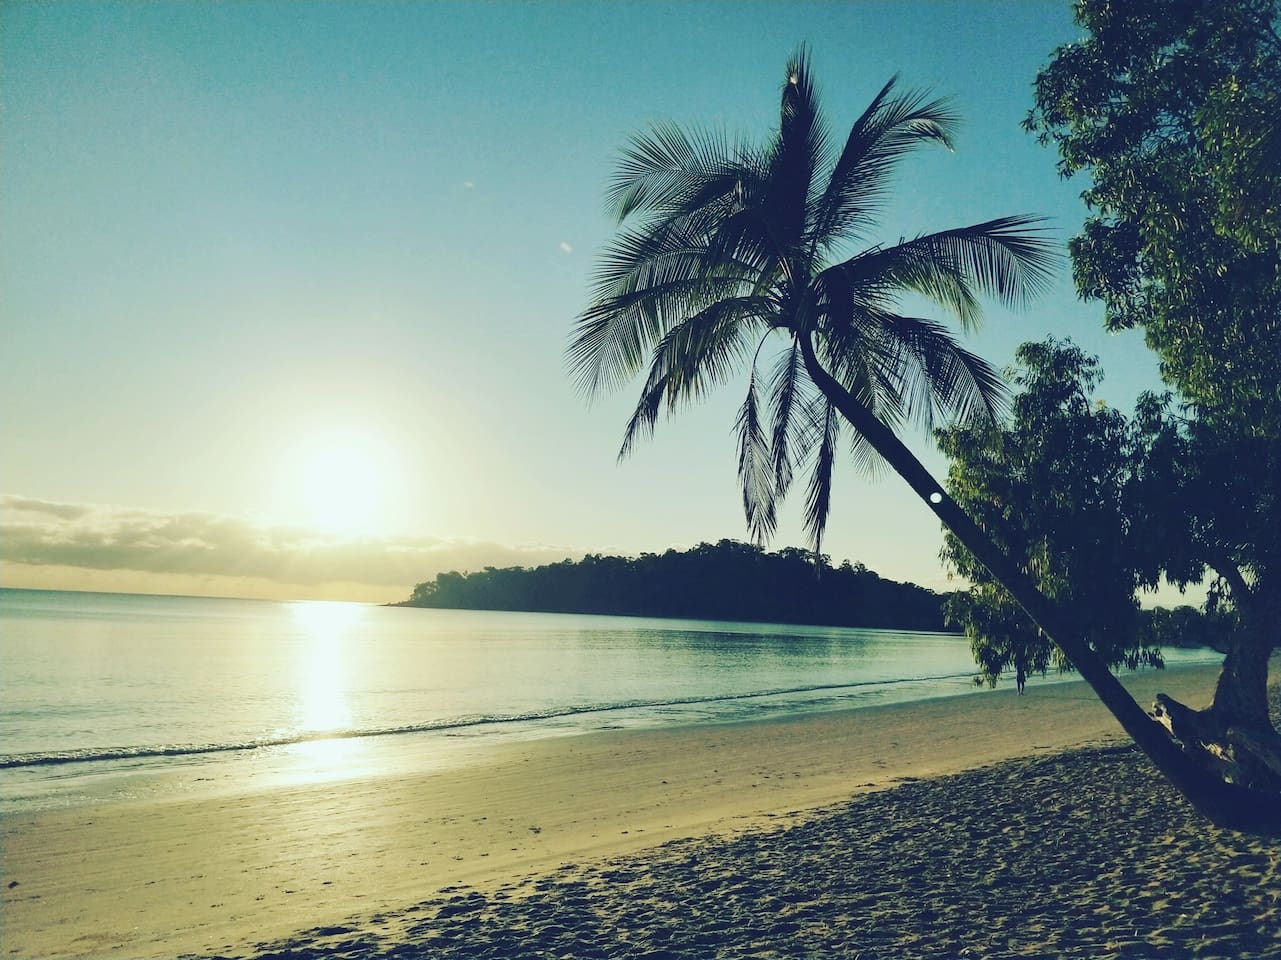 Only 7 minutes walk to this sensational beach.   Enjoy coffee or a meal at the Kewarra resort  The walk to palm cove takes about 40minutes